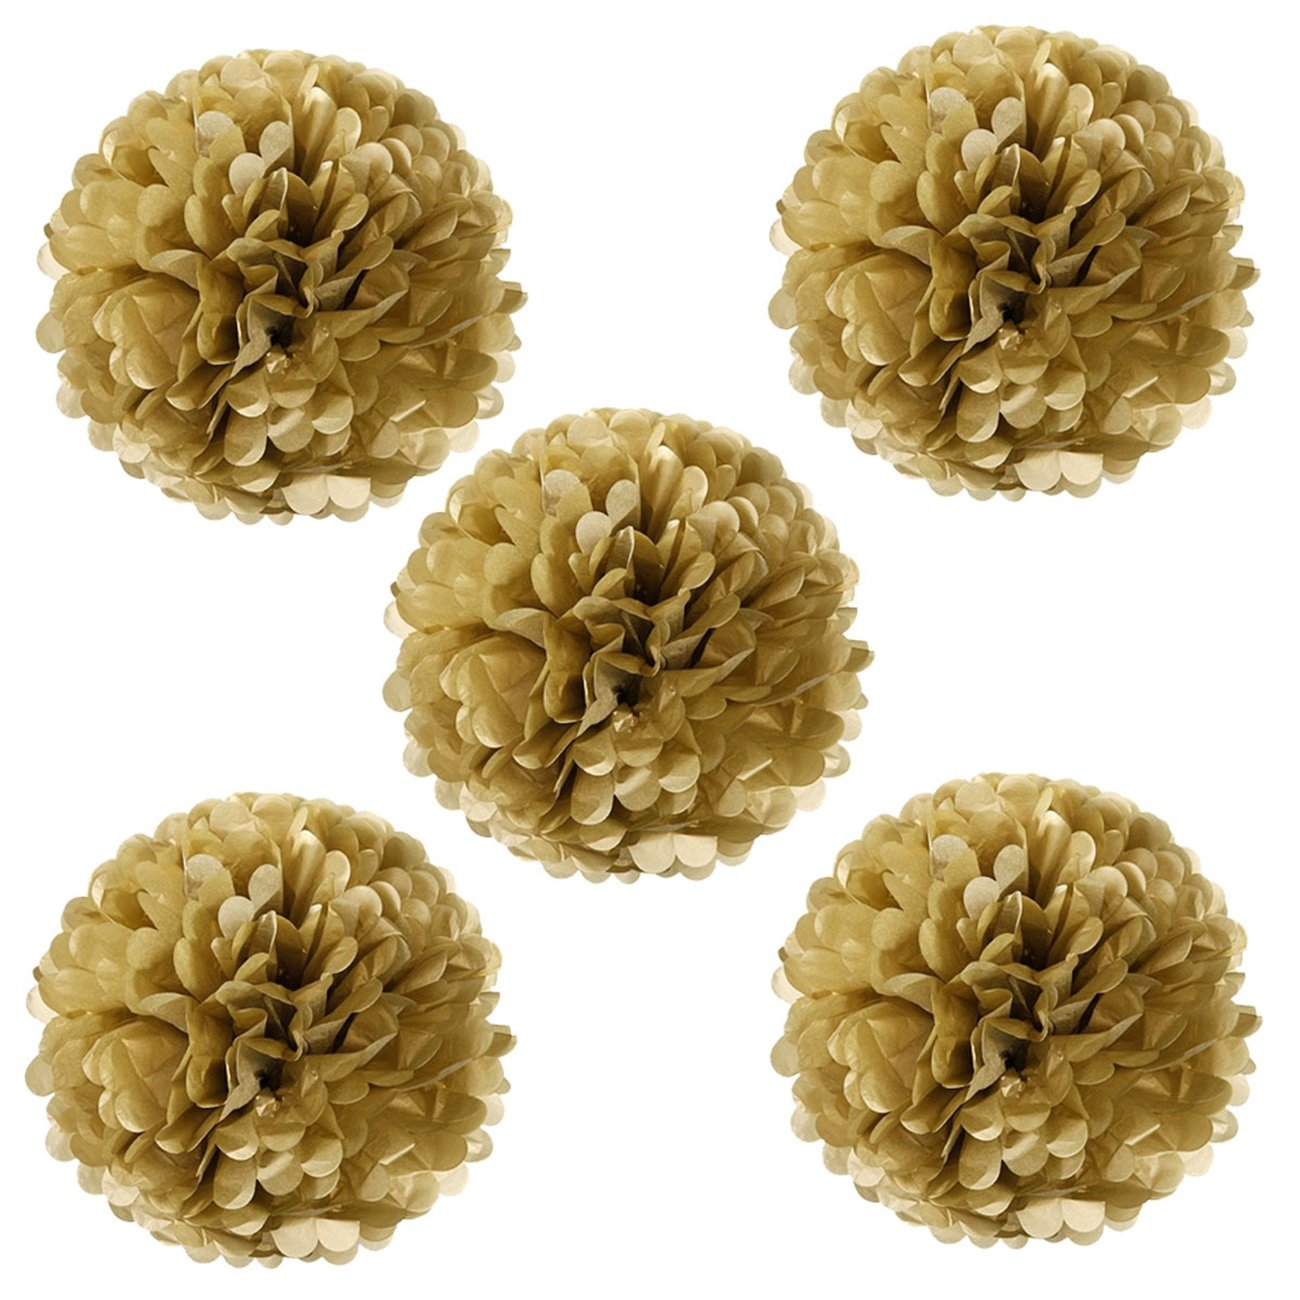 Wrapables 8 Set of 5 Tissue Pom Poms Party Decorations for Weddings, Birthday Parties Baby Showers and Nursery Décor entesar dalah david bradley and andrew nisbet quantitative modeling of tissue activity curves of 64cu atsm